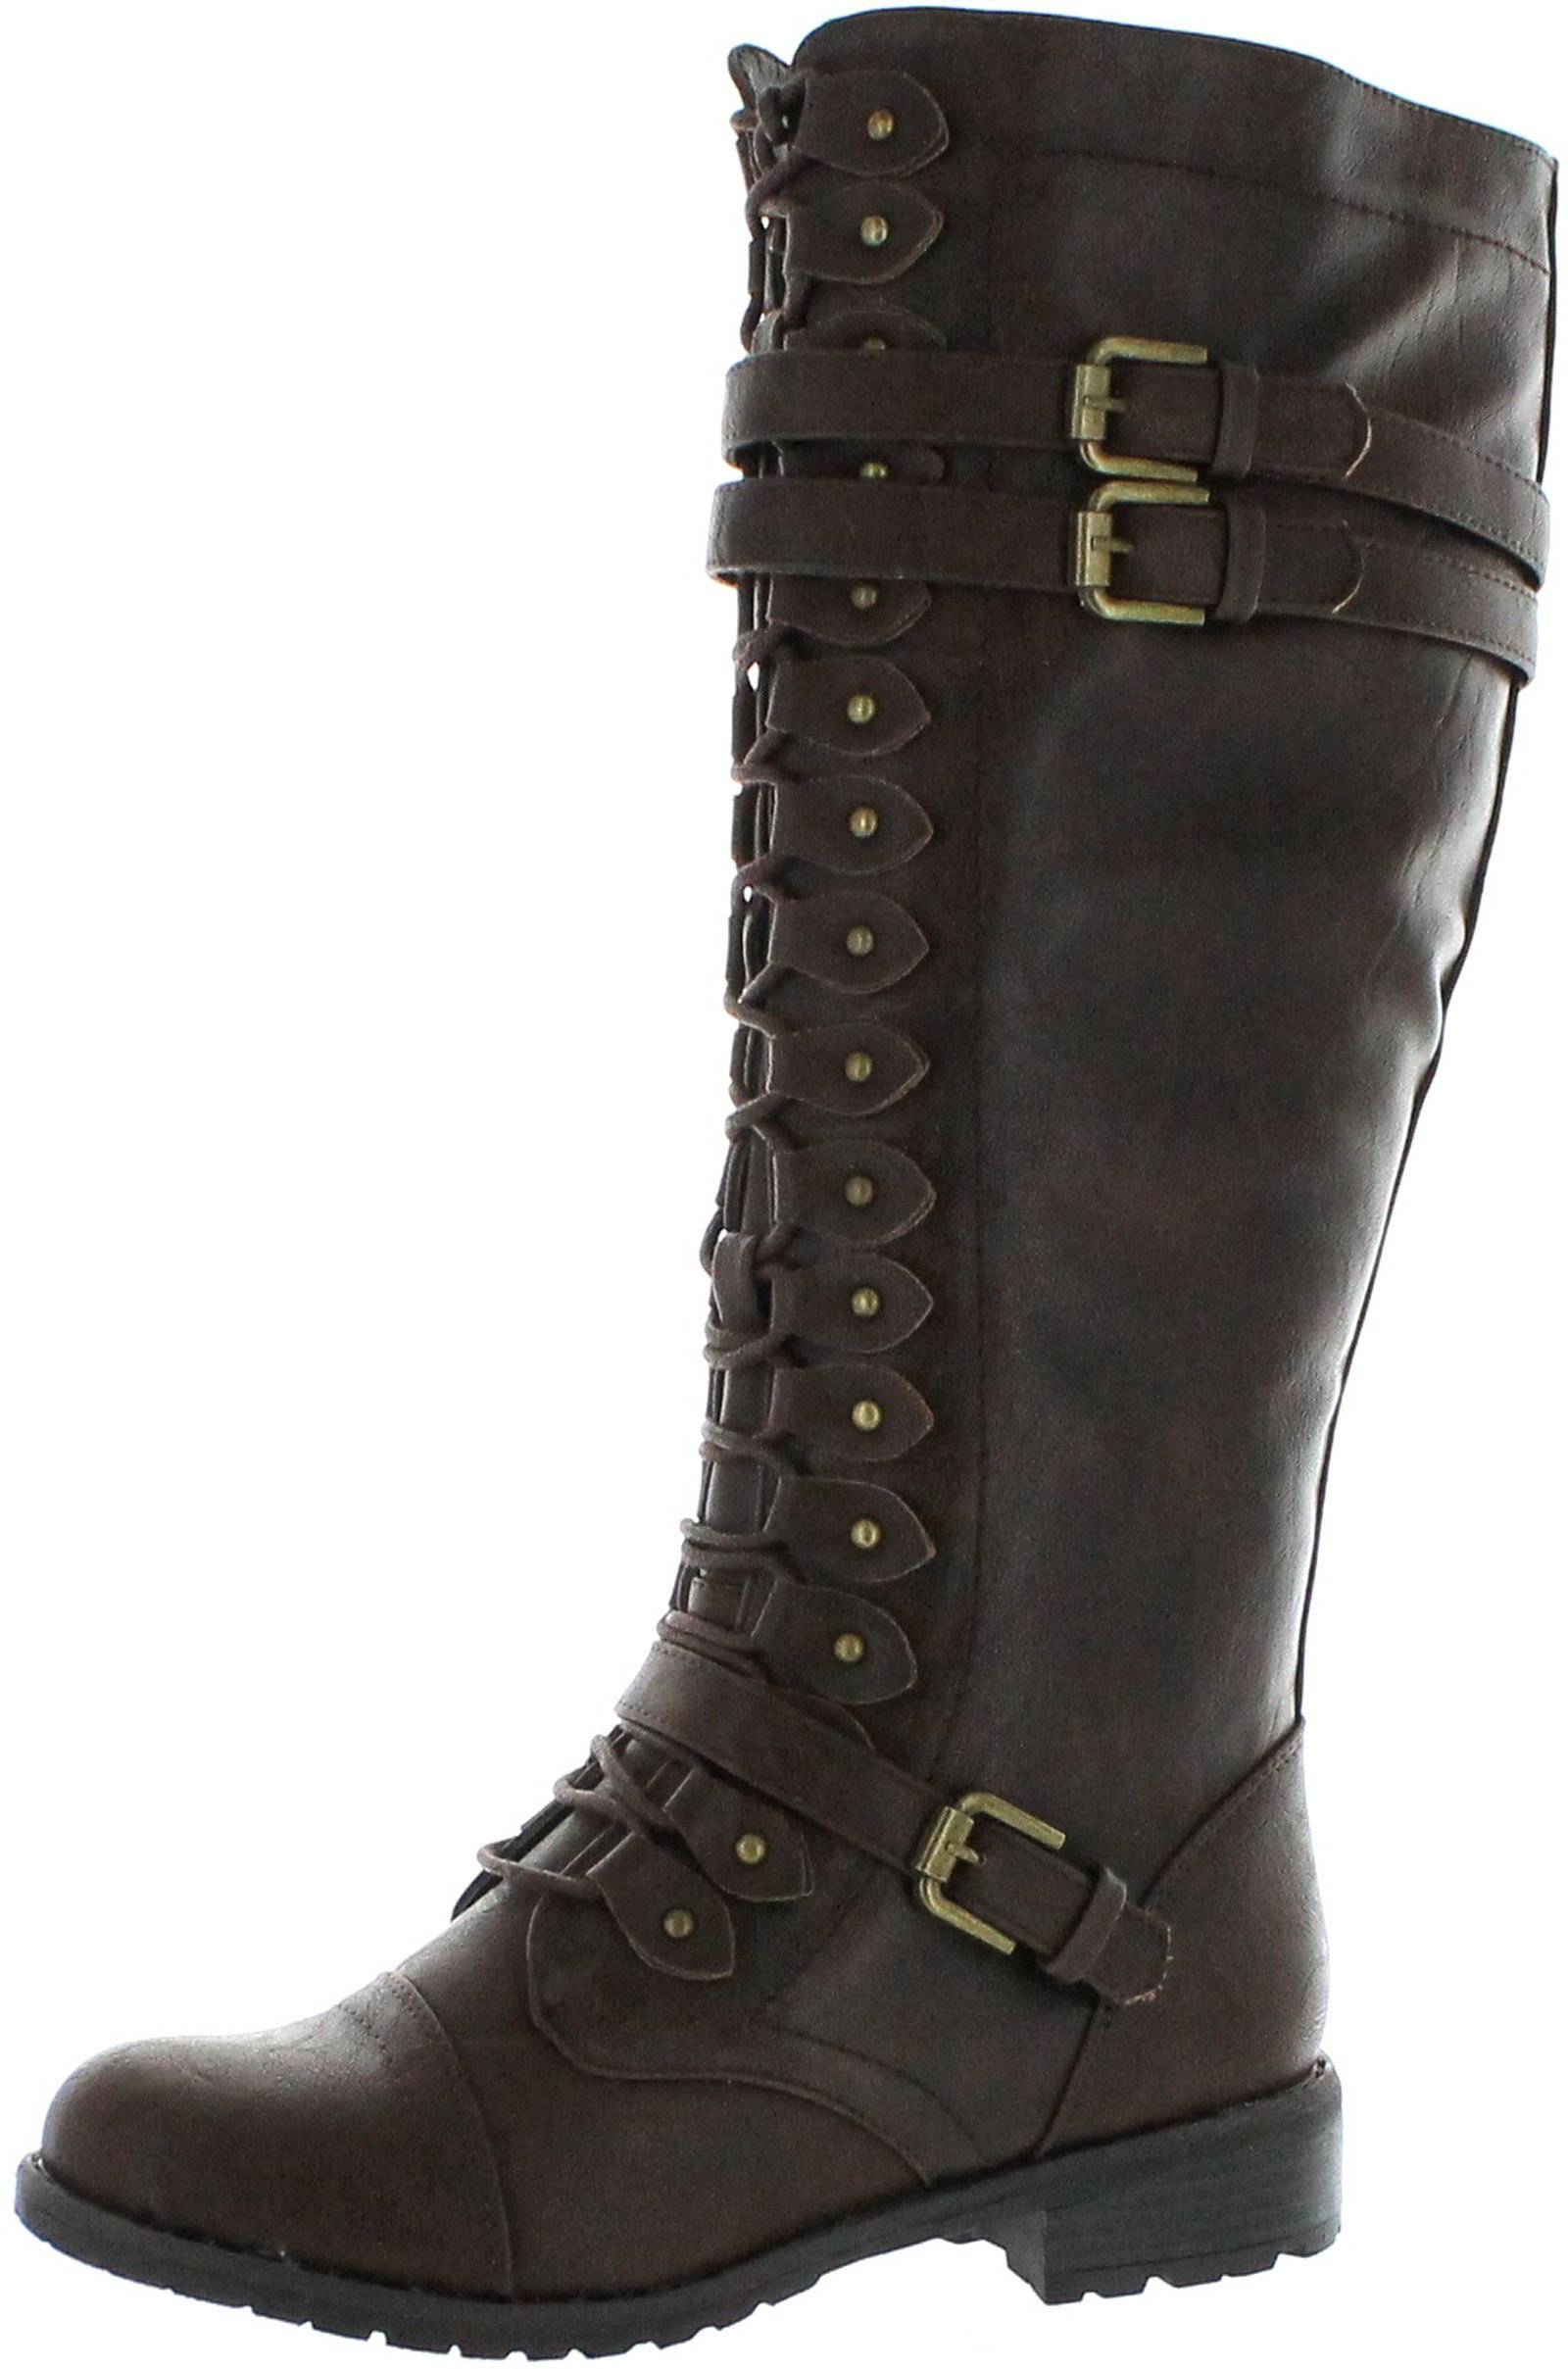 Wild Diva Womens Timberly-65 Lace Up Knee High Boots Brown 7.5 B(M) US